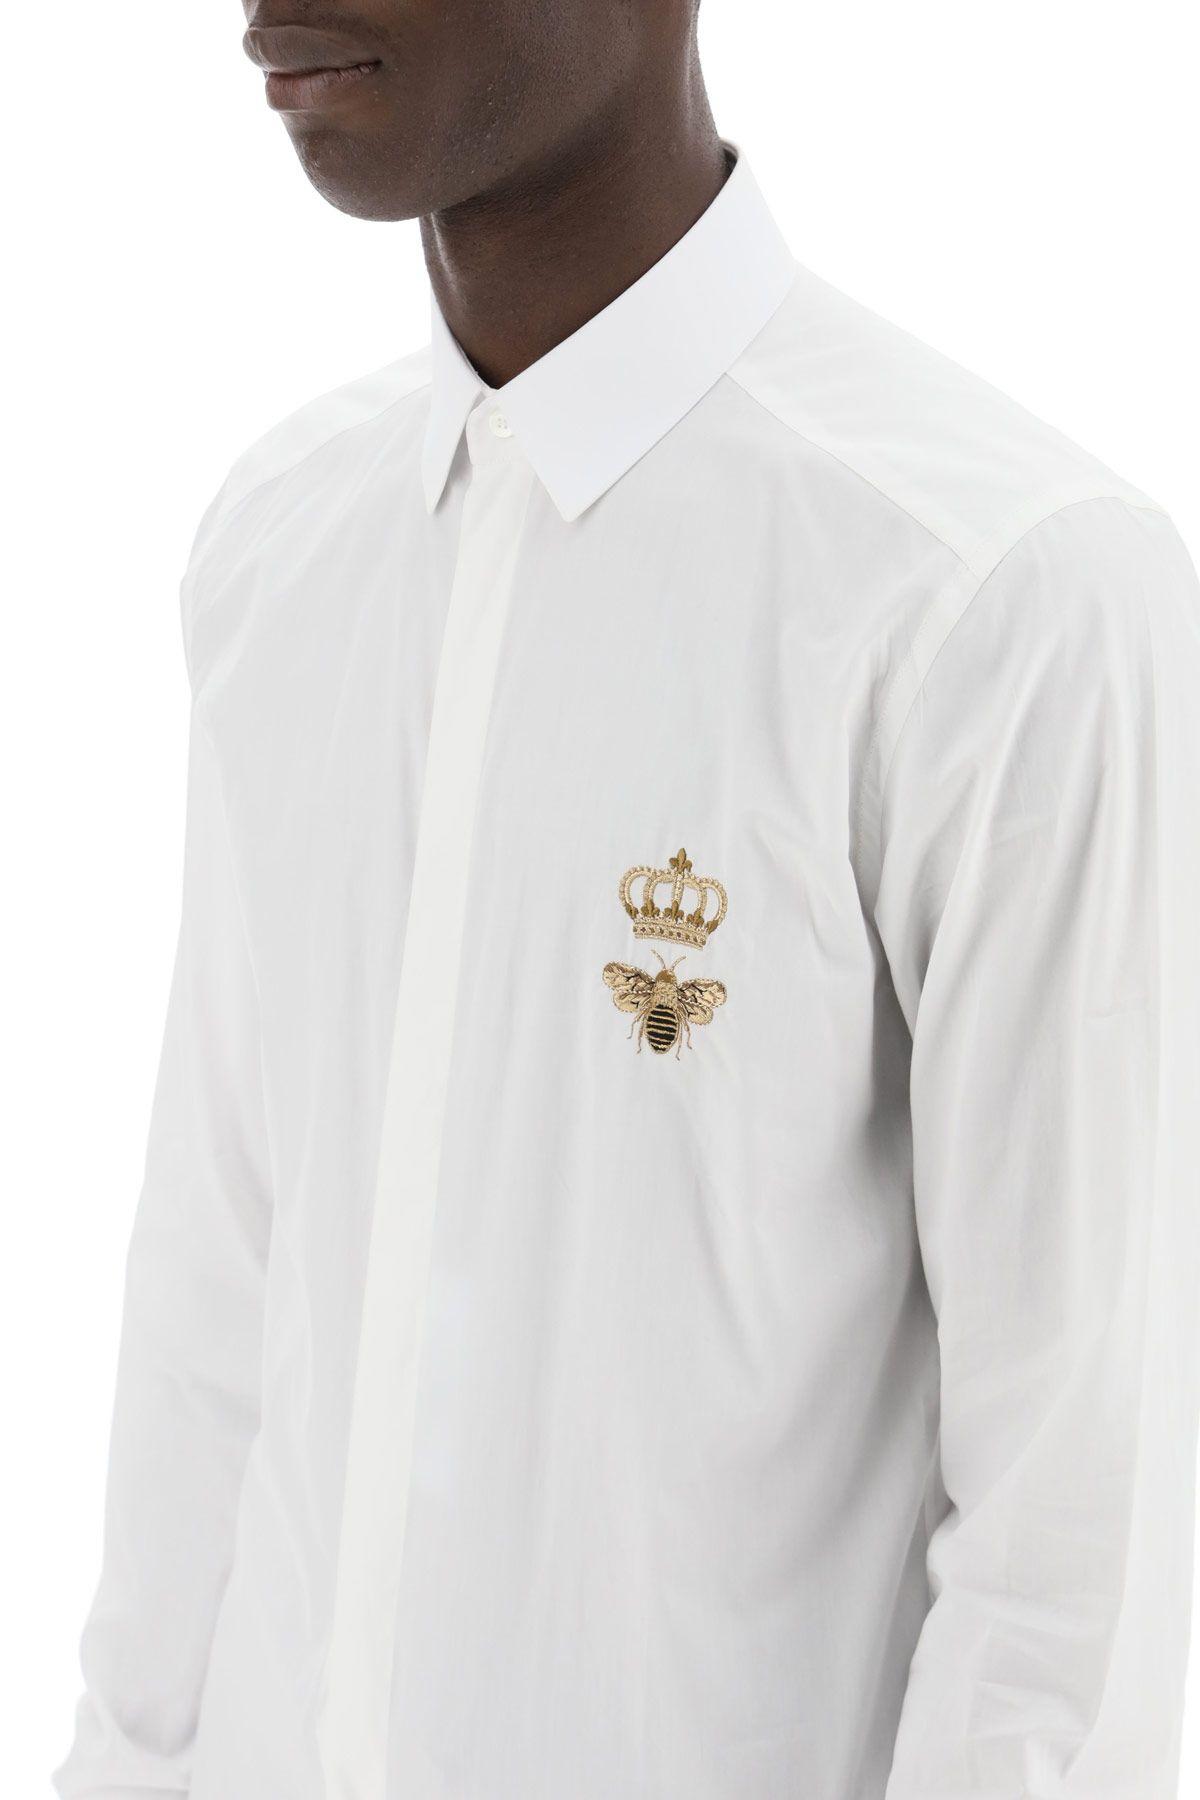 dolce & gabbana clothing men shirt with crown and bee embroidery